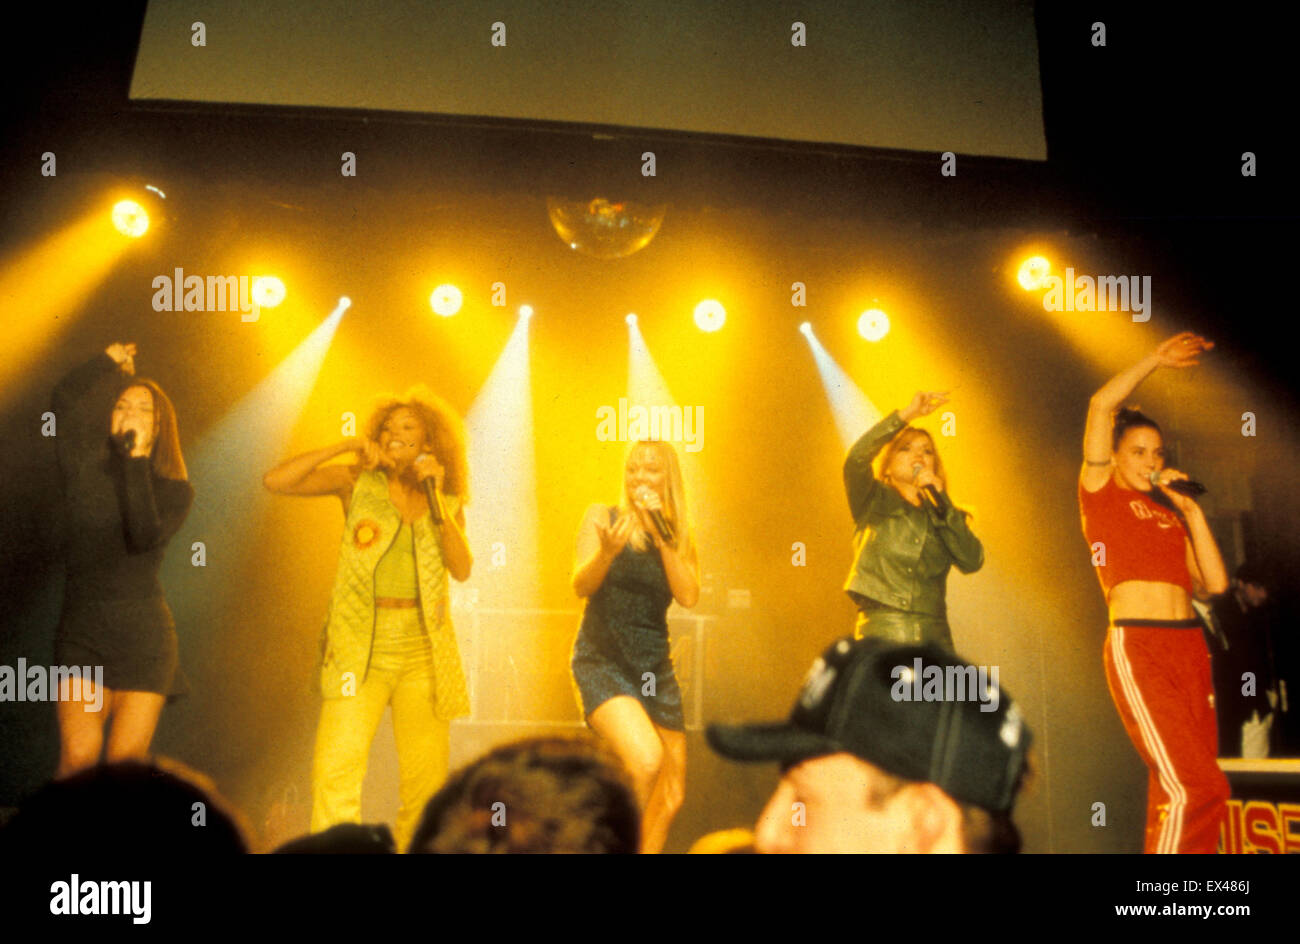 SPICE GIRLS UK pop group at the Billboard Live show in Los Angeles in January 1997 - Stock Image